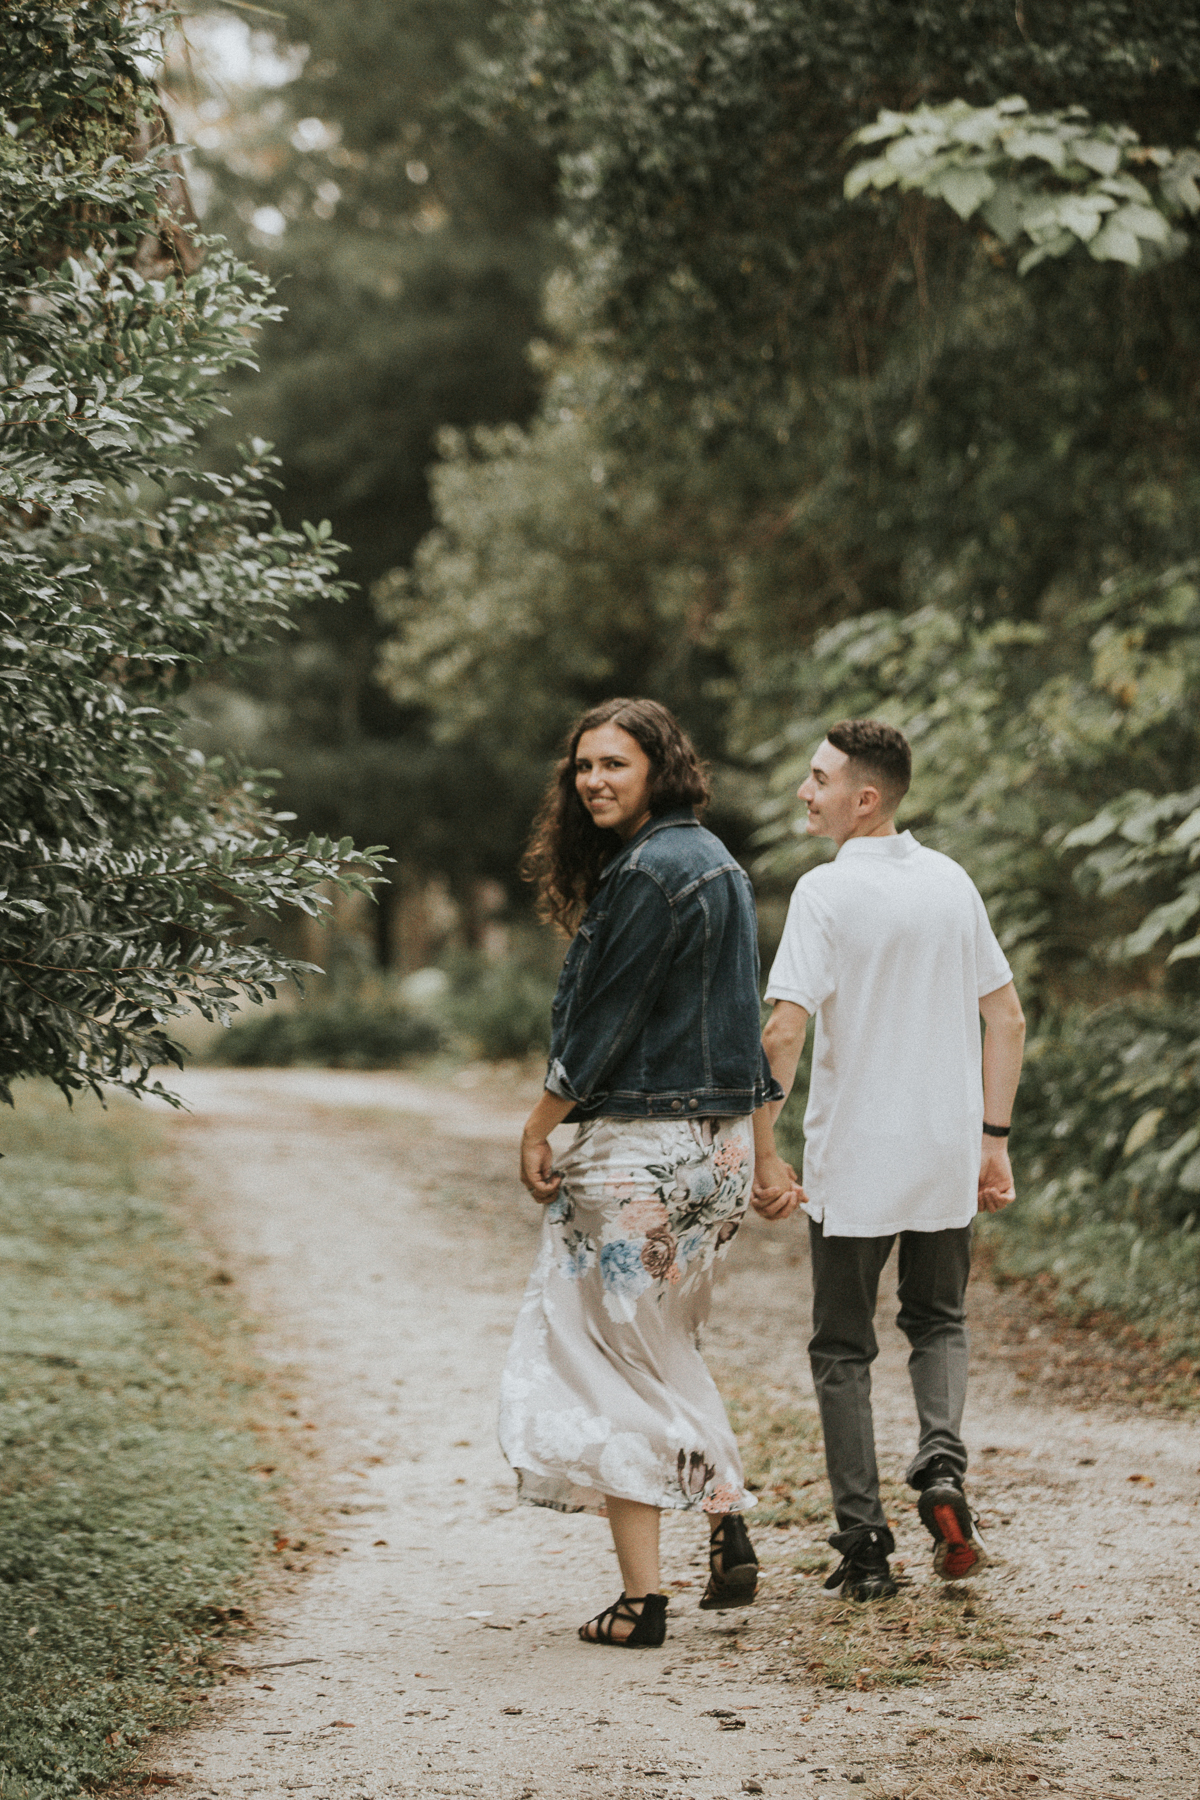 Save the Date! Other notabledates for these two include… - 1/20/2019 — The release of their B&W photo film prints from this session.5/18/2019 — Tessa and Patrick's special day!!